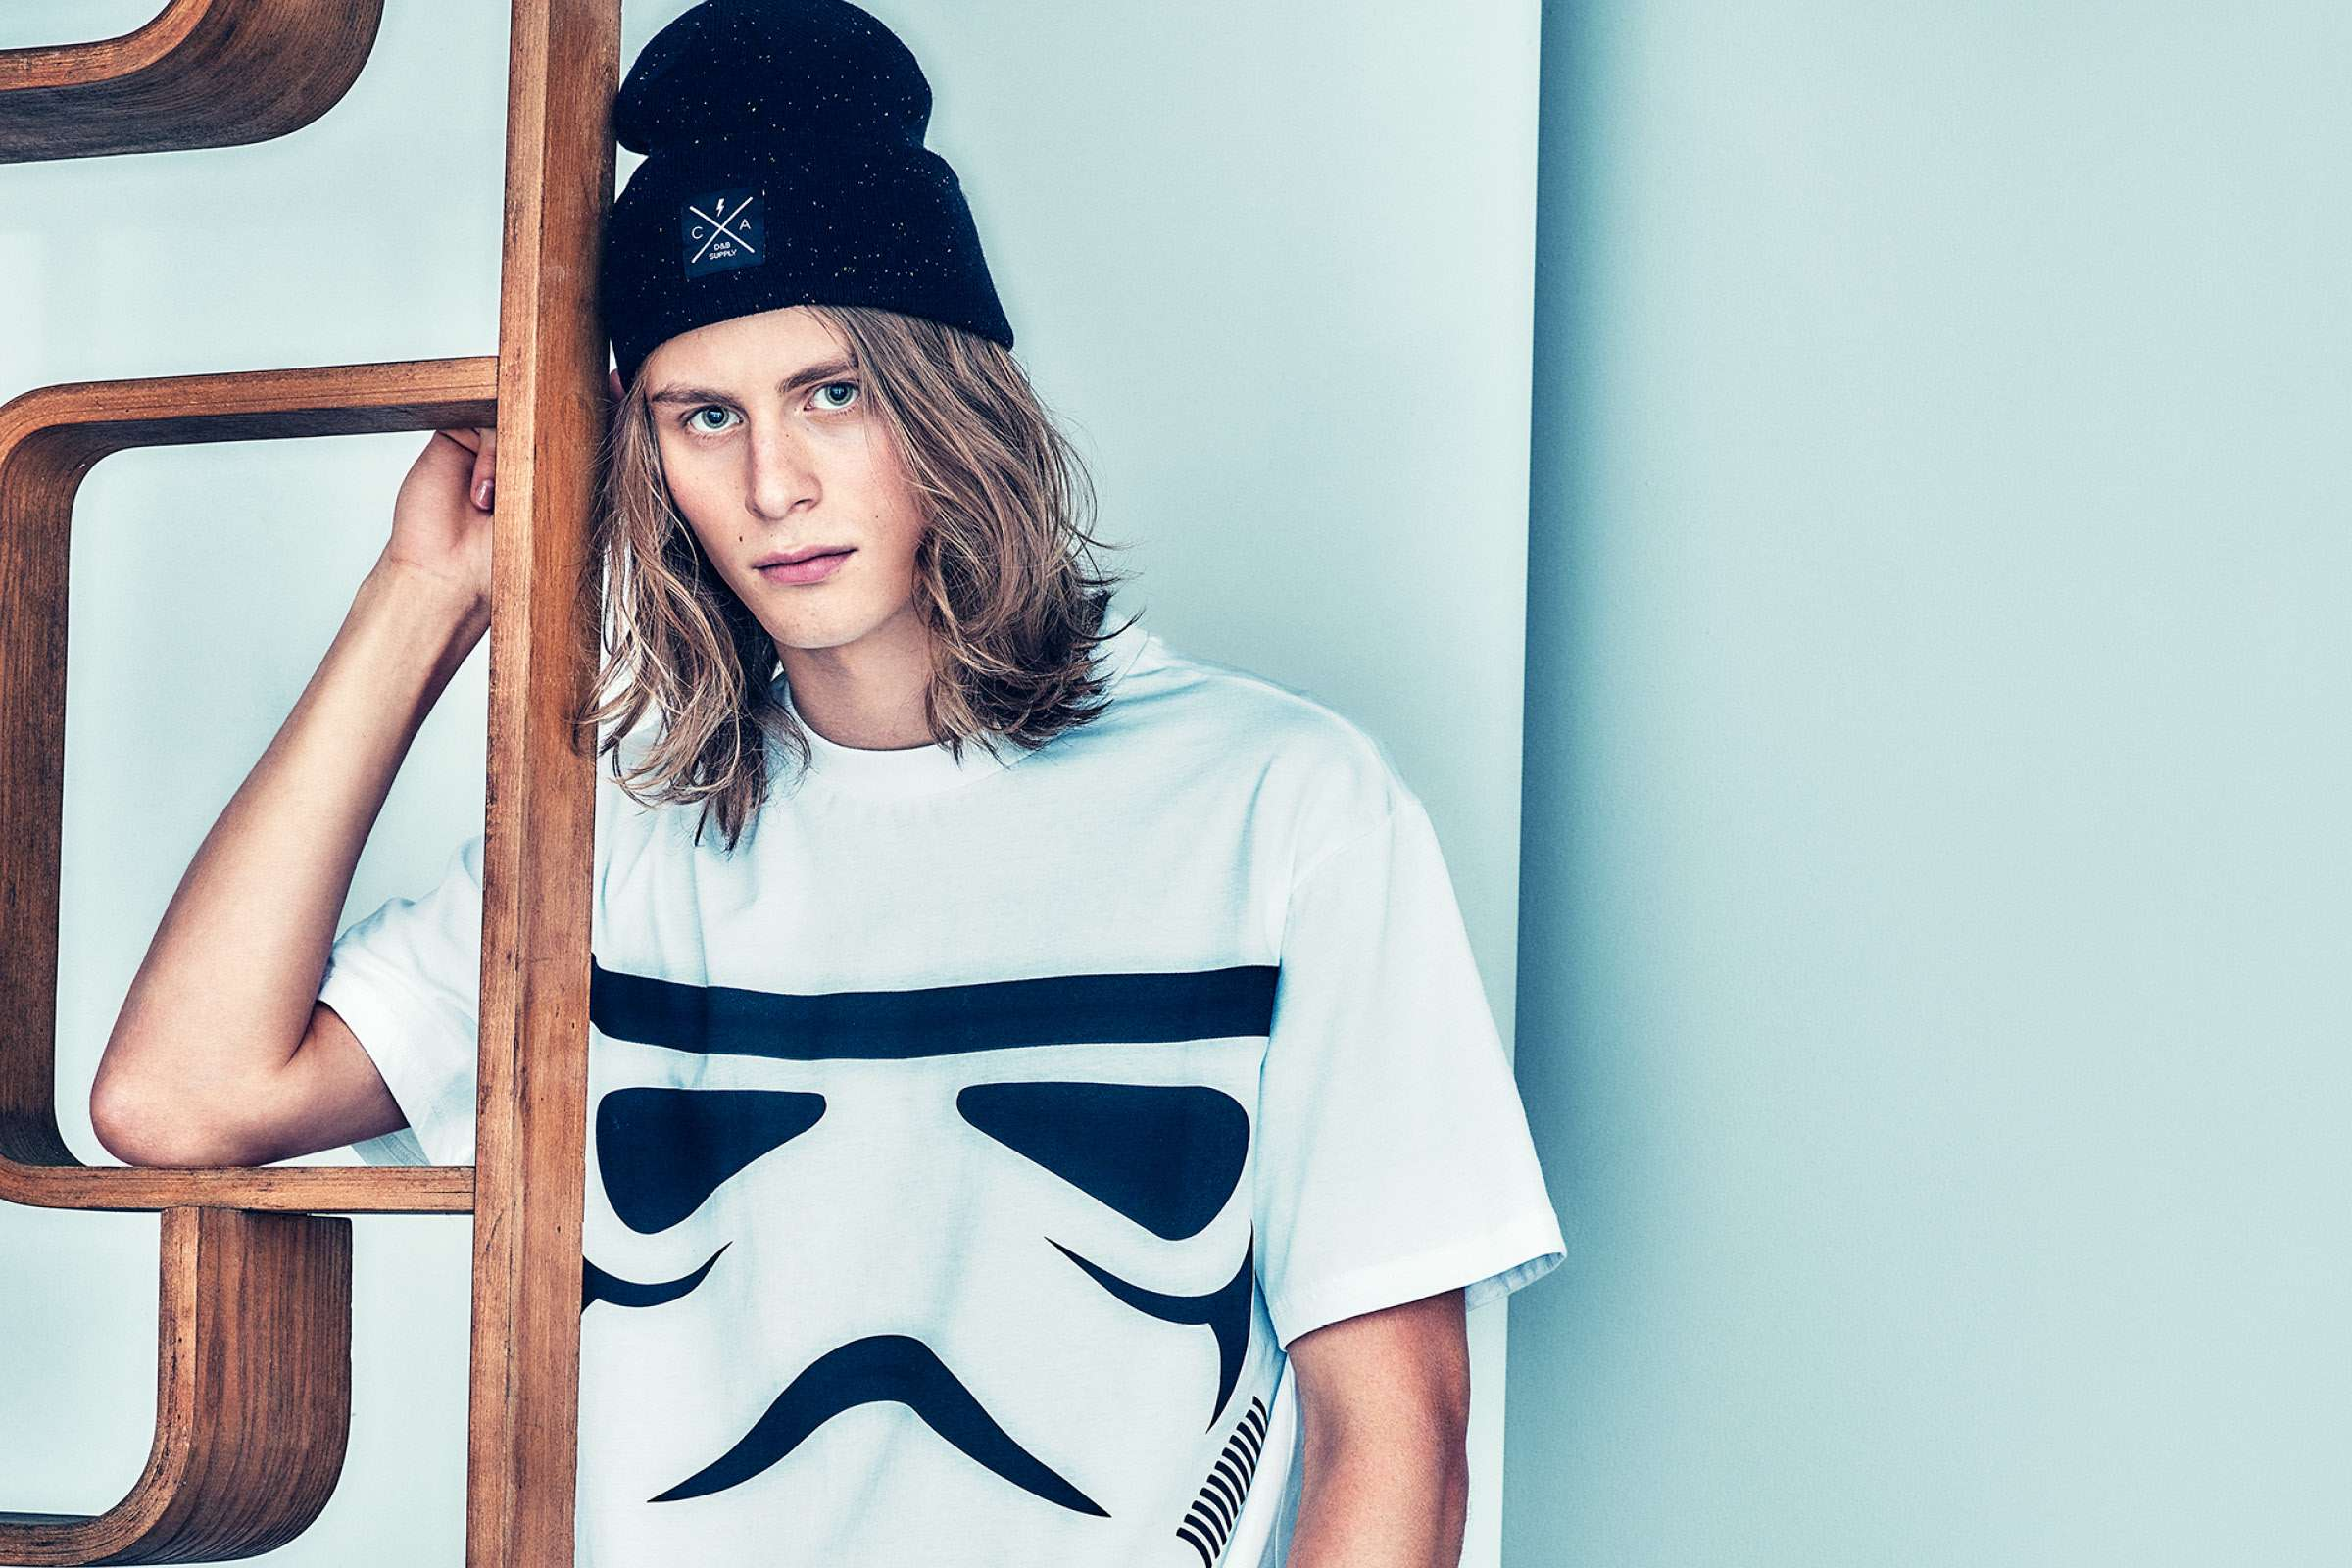 H&M Goes Casually Cool with Latest Fashions